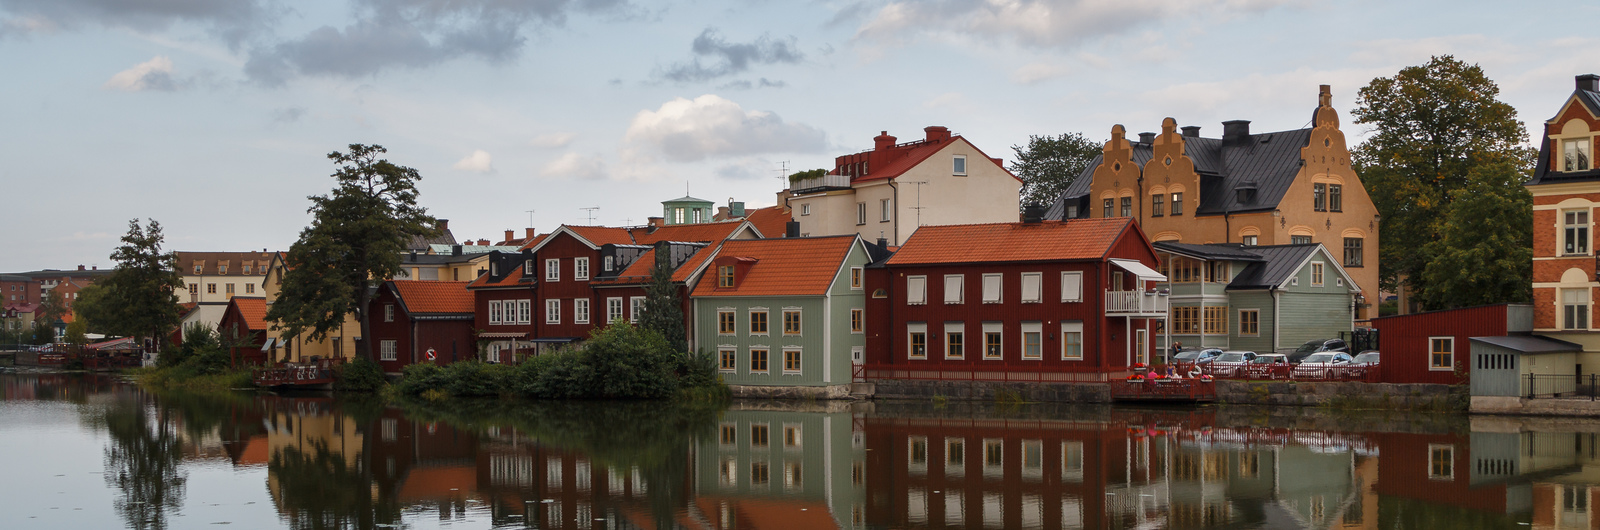 eskilstuna city header